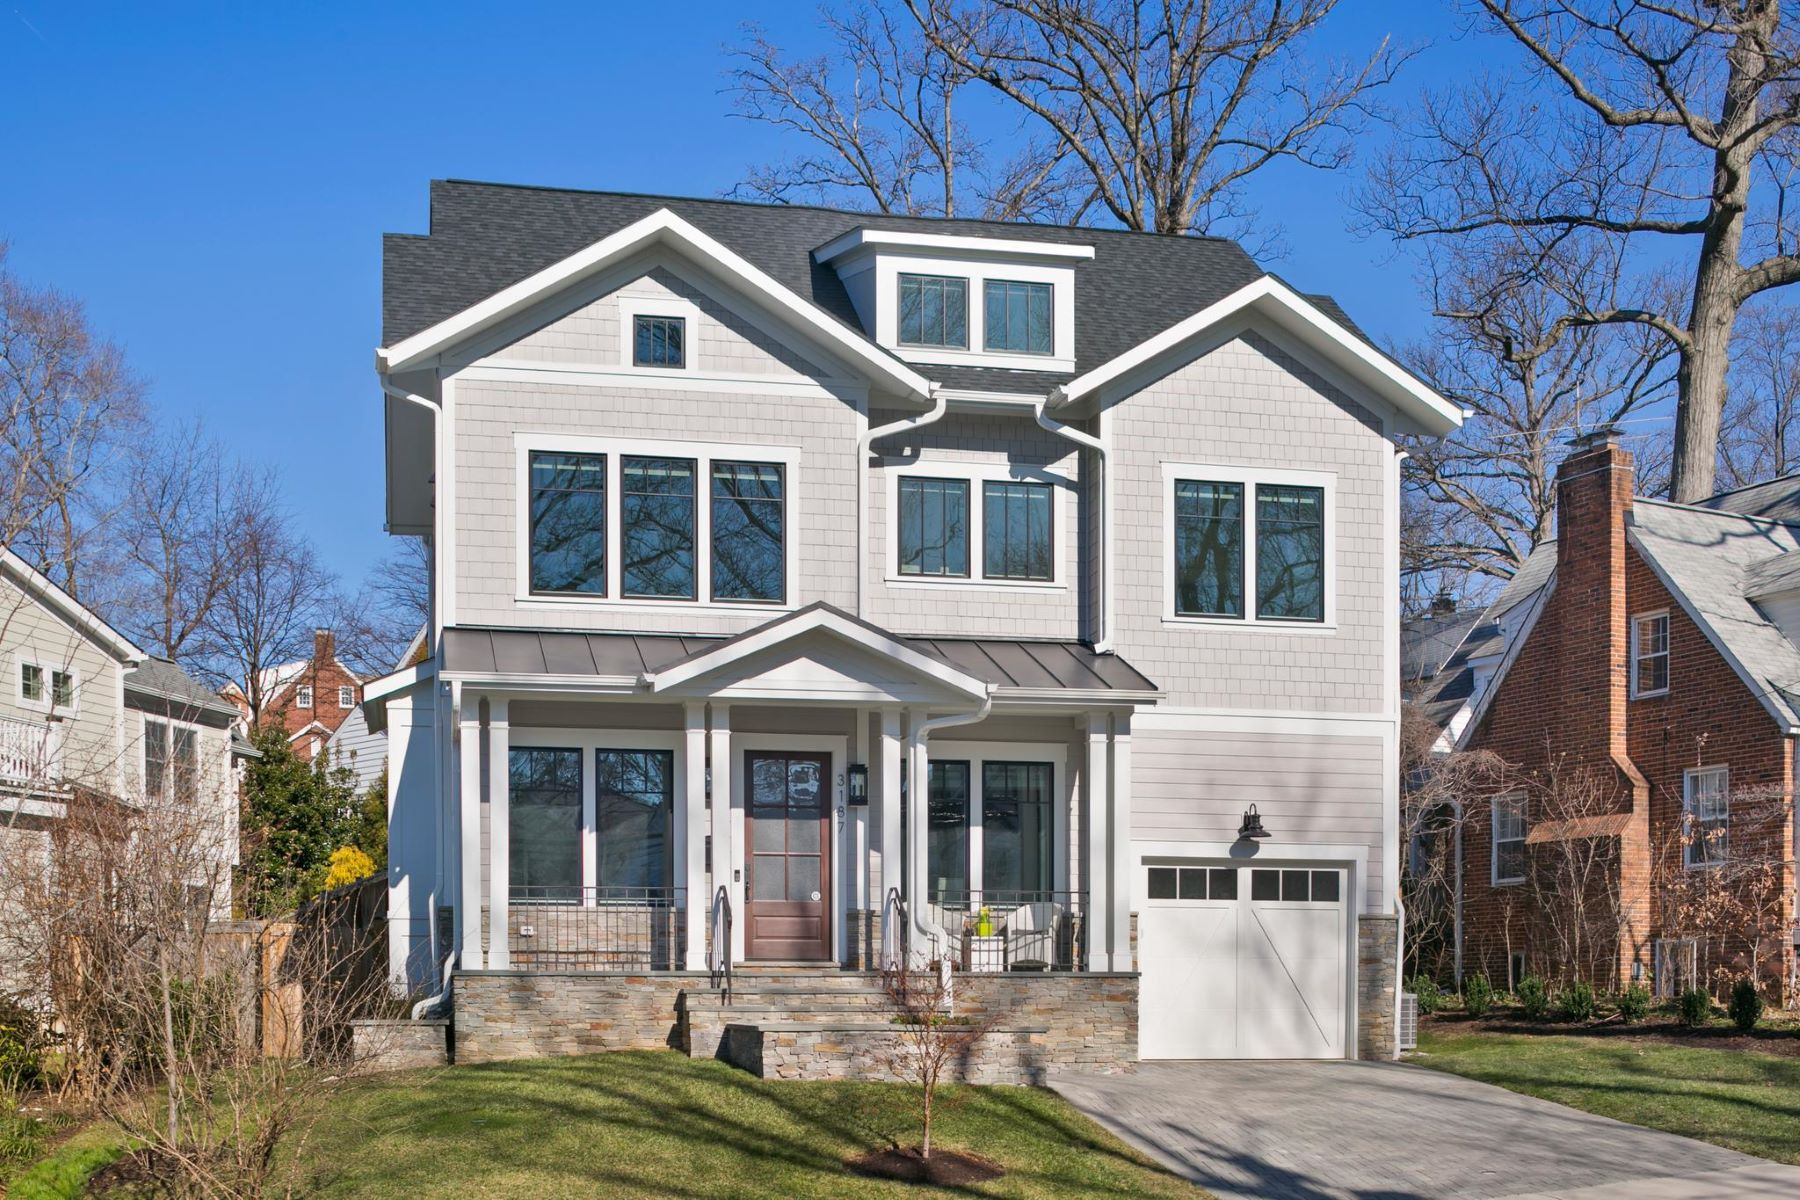 Single Family Home for Sale at 3187 17th St N 3187 17th St N Arlington, Virginia 22201 United States